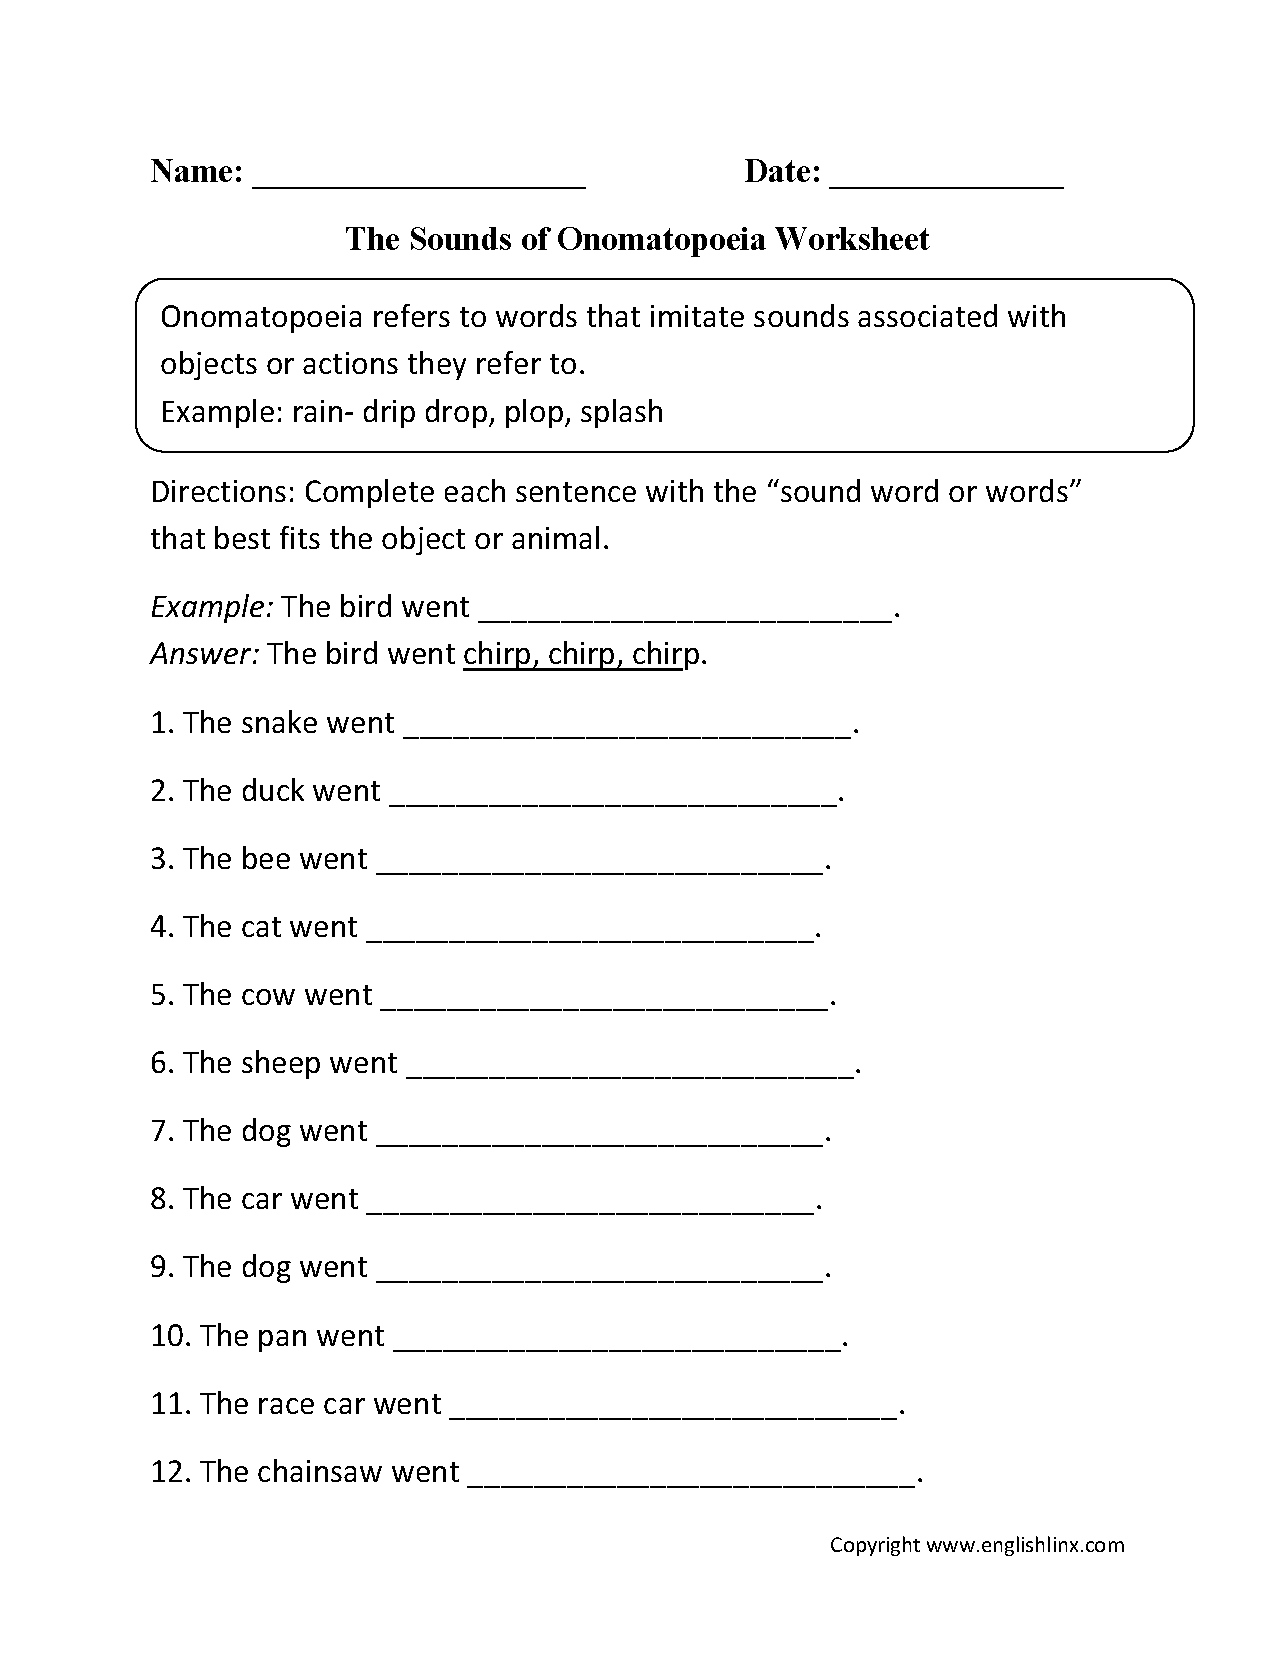 Aldiablosus  Pleasing Englishlinxcom  Onomatopoeia Worksheets With Lovely Worksheet With Delectable Capital Letter Worksheets For Kindergarten Also How To Read A Metric Ruler Worksheet In Addition Worksheets On Subjects And Predicates And Fraction Worksheets Year  As Well As Past Tense Worksheet For Grade  Additionally Community Helpers Worksheets For Kids From Englishlinxcom With Aldiablosus  Lovely Englishlinxcom  Onomatopoeia Worksheets With Delectable Worksheet And Pleasing Capital Letter Worksheets For Kindergarten Also How To Read A Metric Ruler Worksheet In Addition Worksheets On Subjects And Predicates From Englishlinxcom